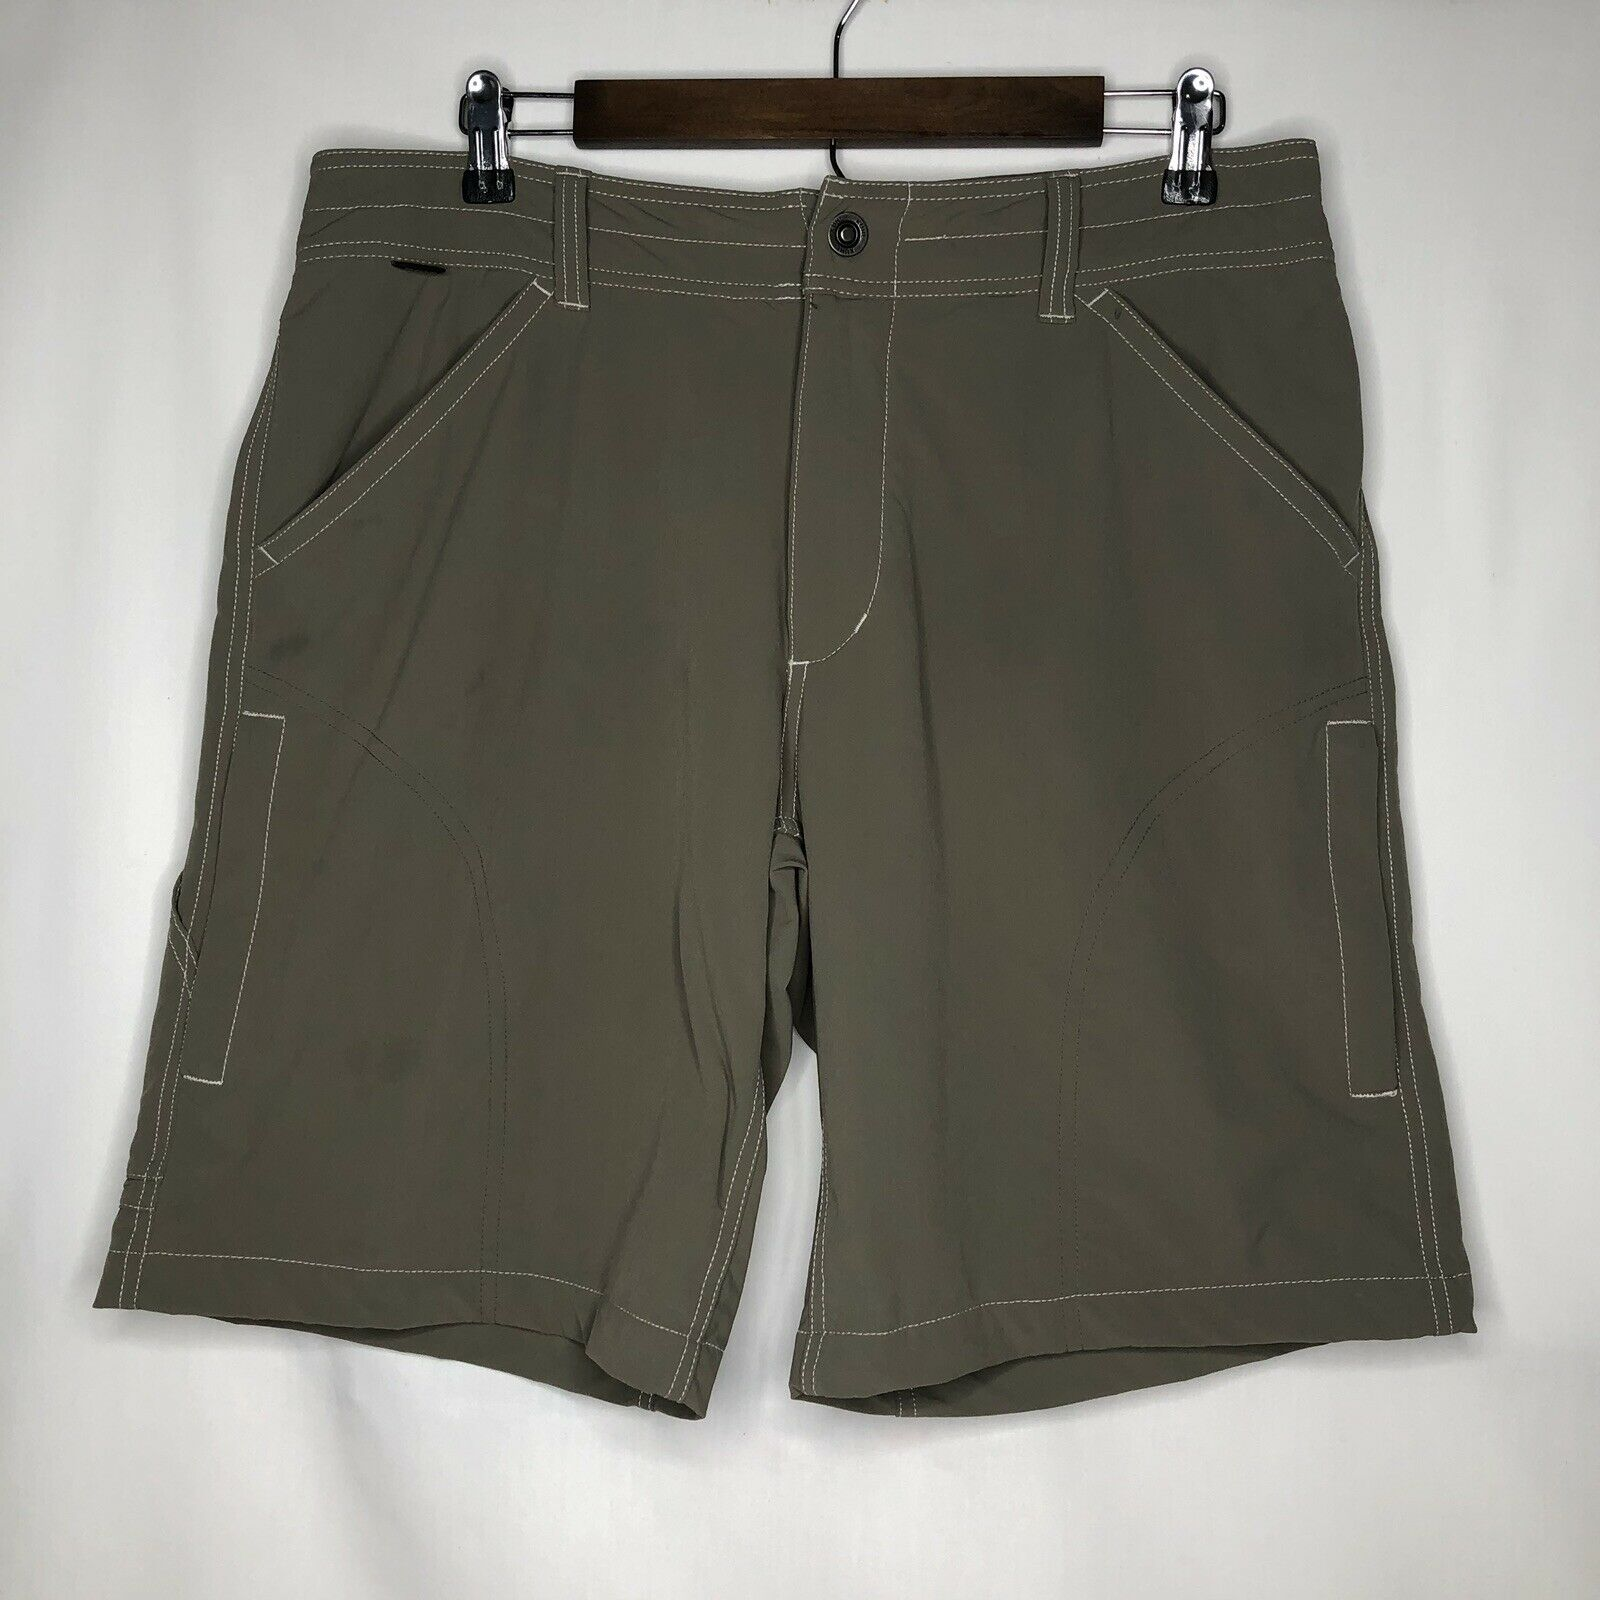 KUHL Mens Sz 34 Performance Shorts Olive  Khaki Hiking Trail Outerwear Cargo  world famous sale online